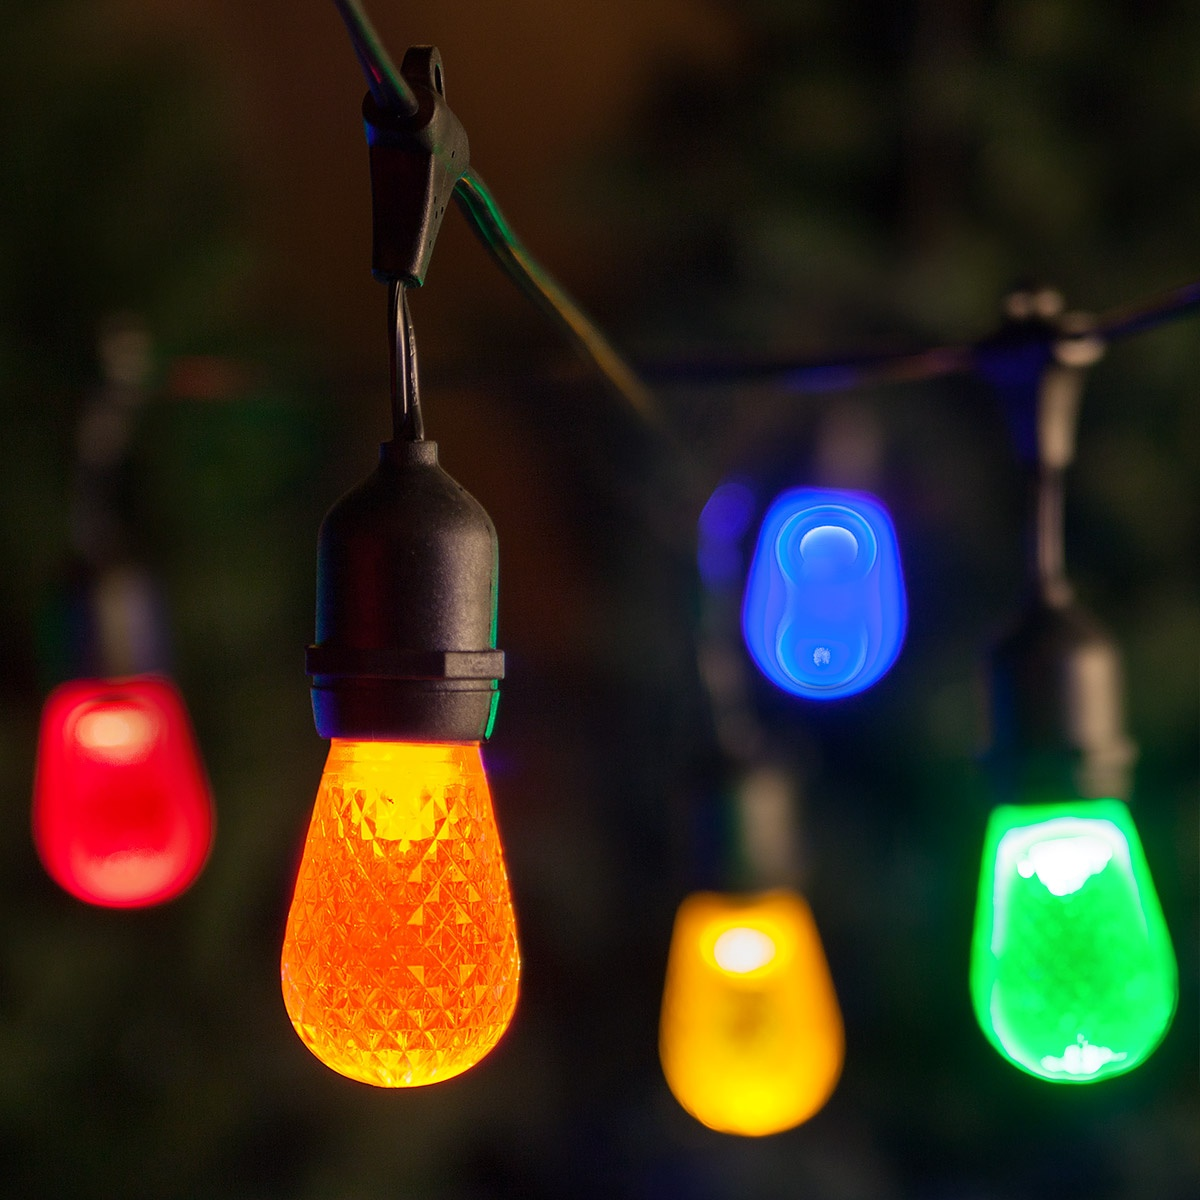 Commercial Patio String Lights, Multicolor S14 LED Bulbs